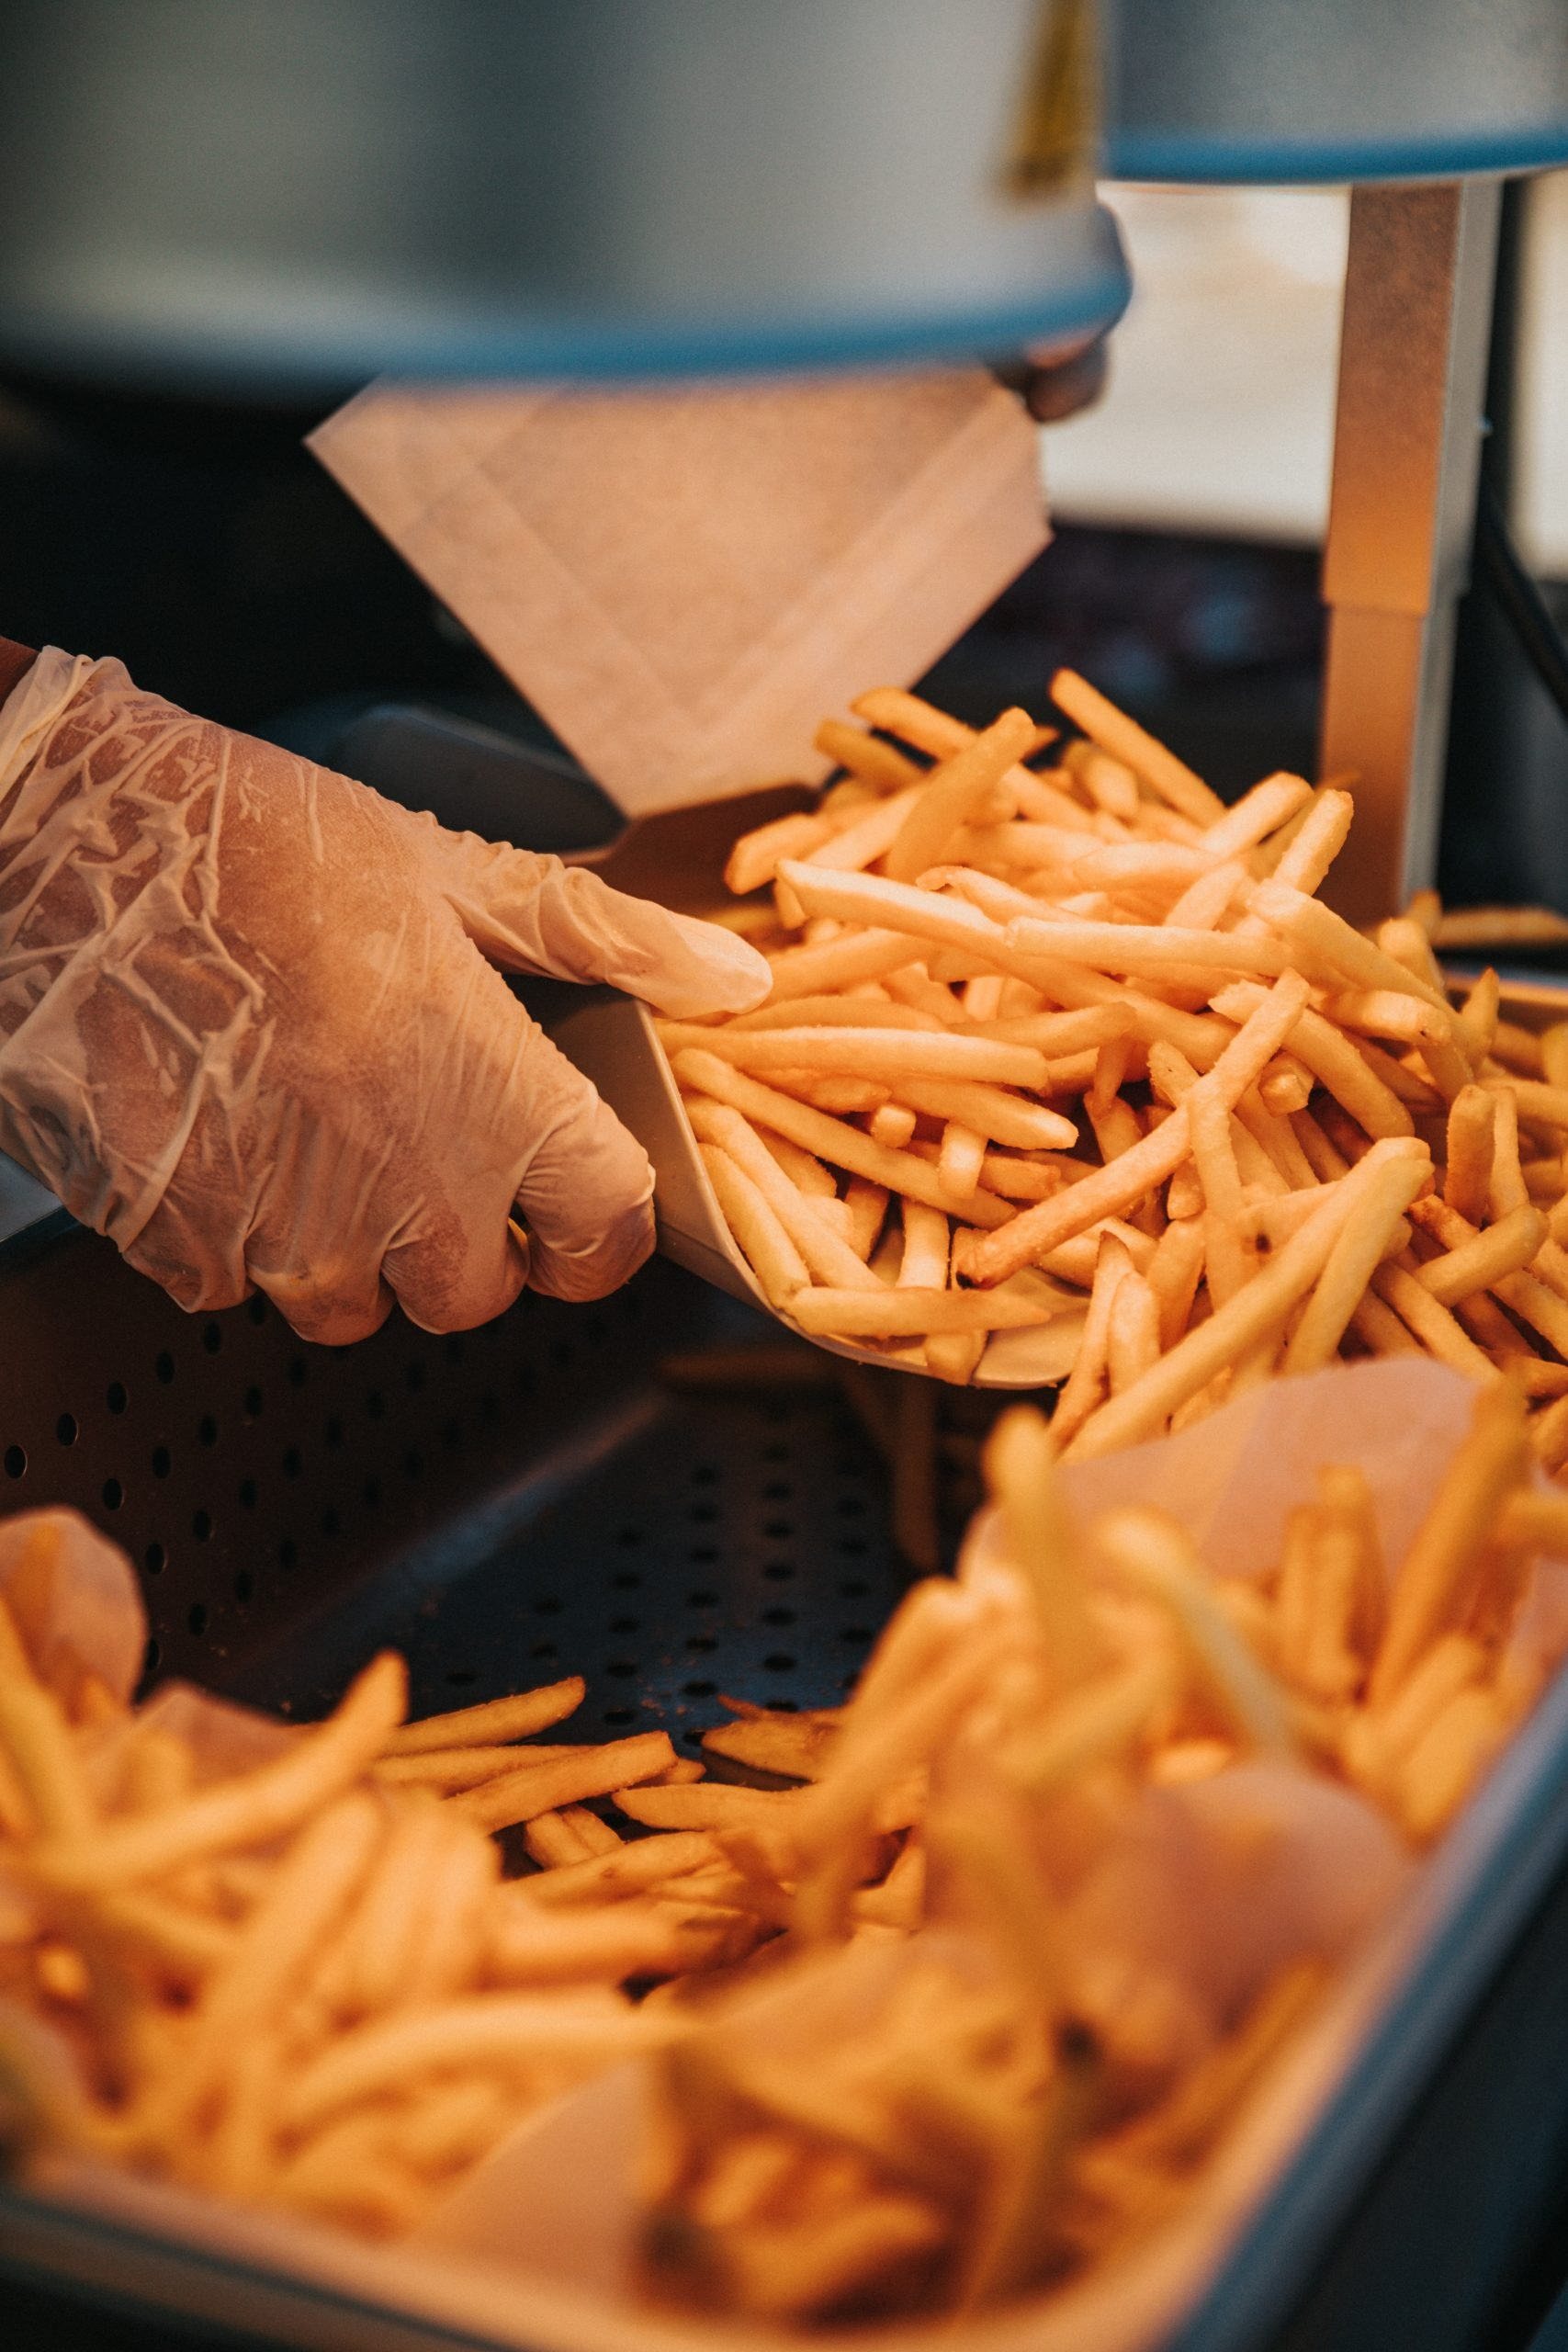 French fries being pulled out of a hot keeping holder